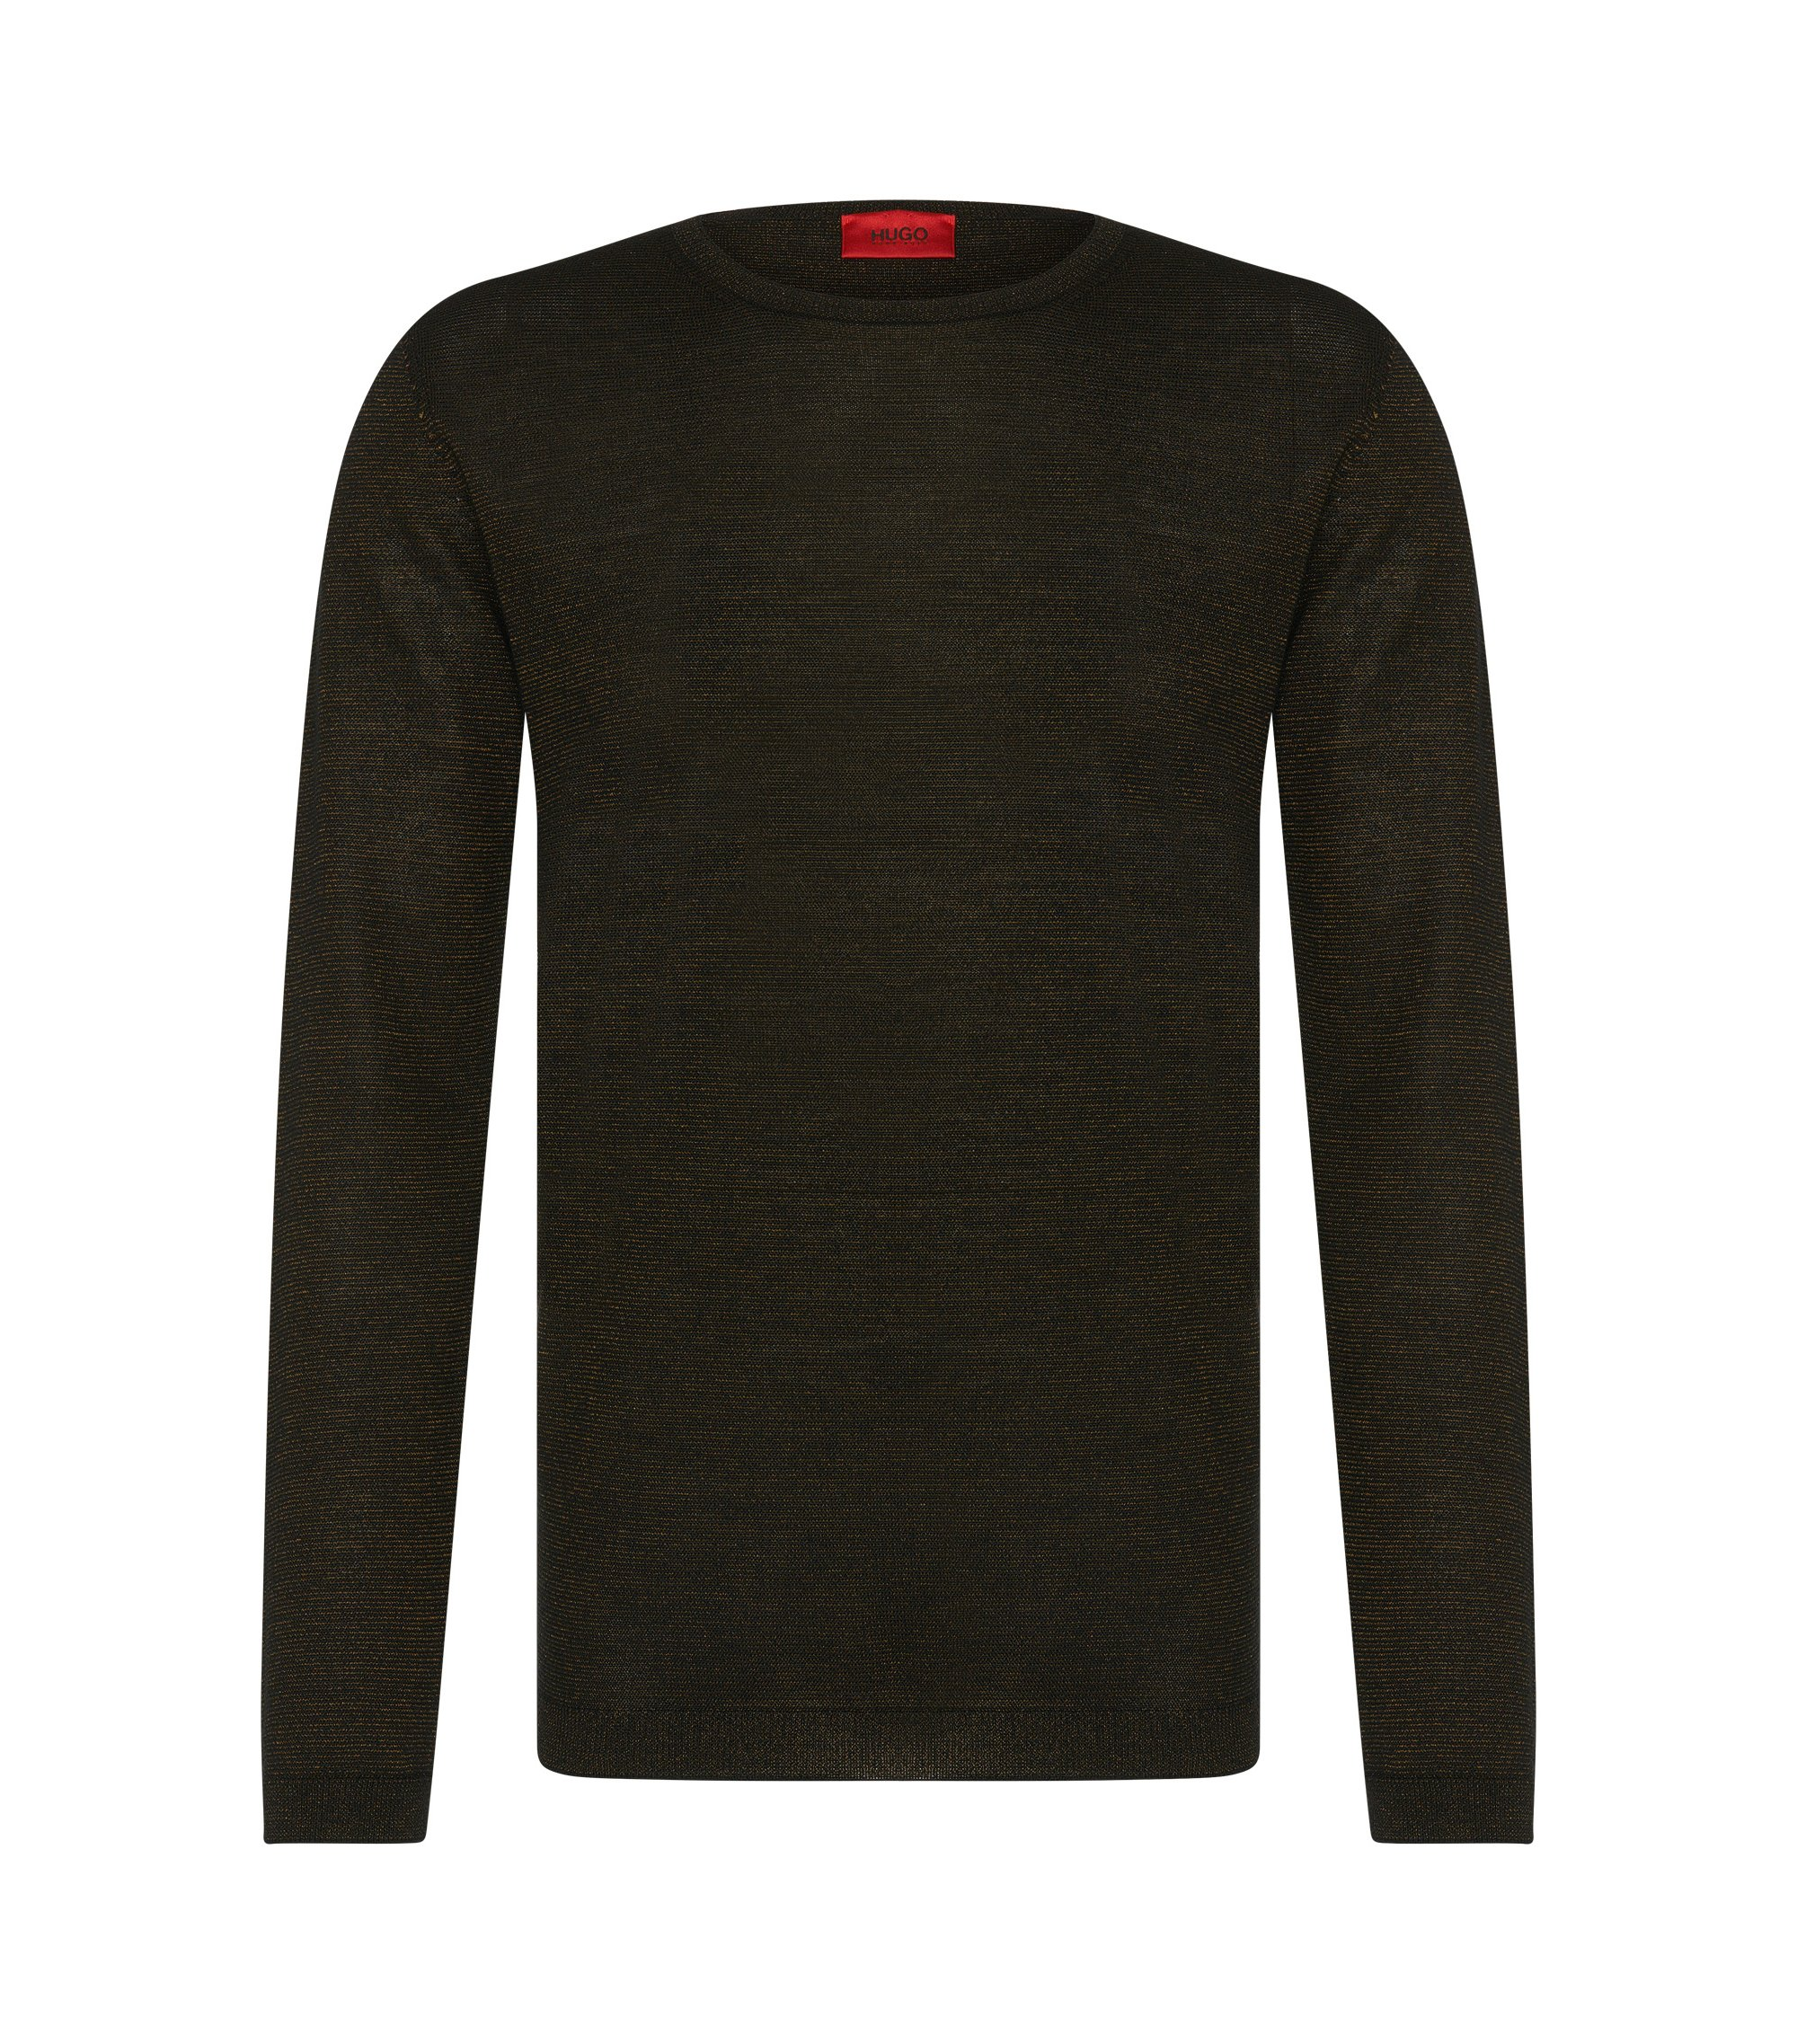 'Salex' | Merino Virgin Wool Blend Metallic Stripe Sweater, Brown